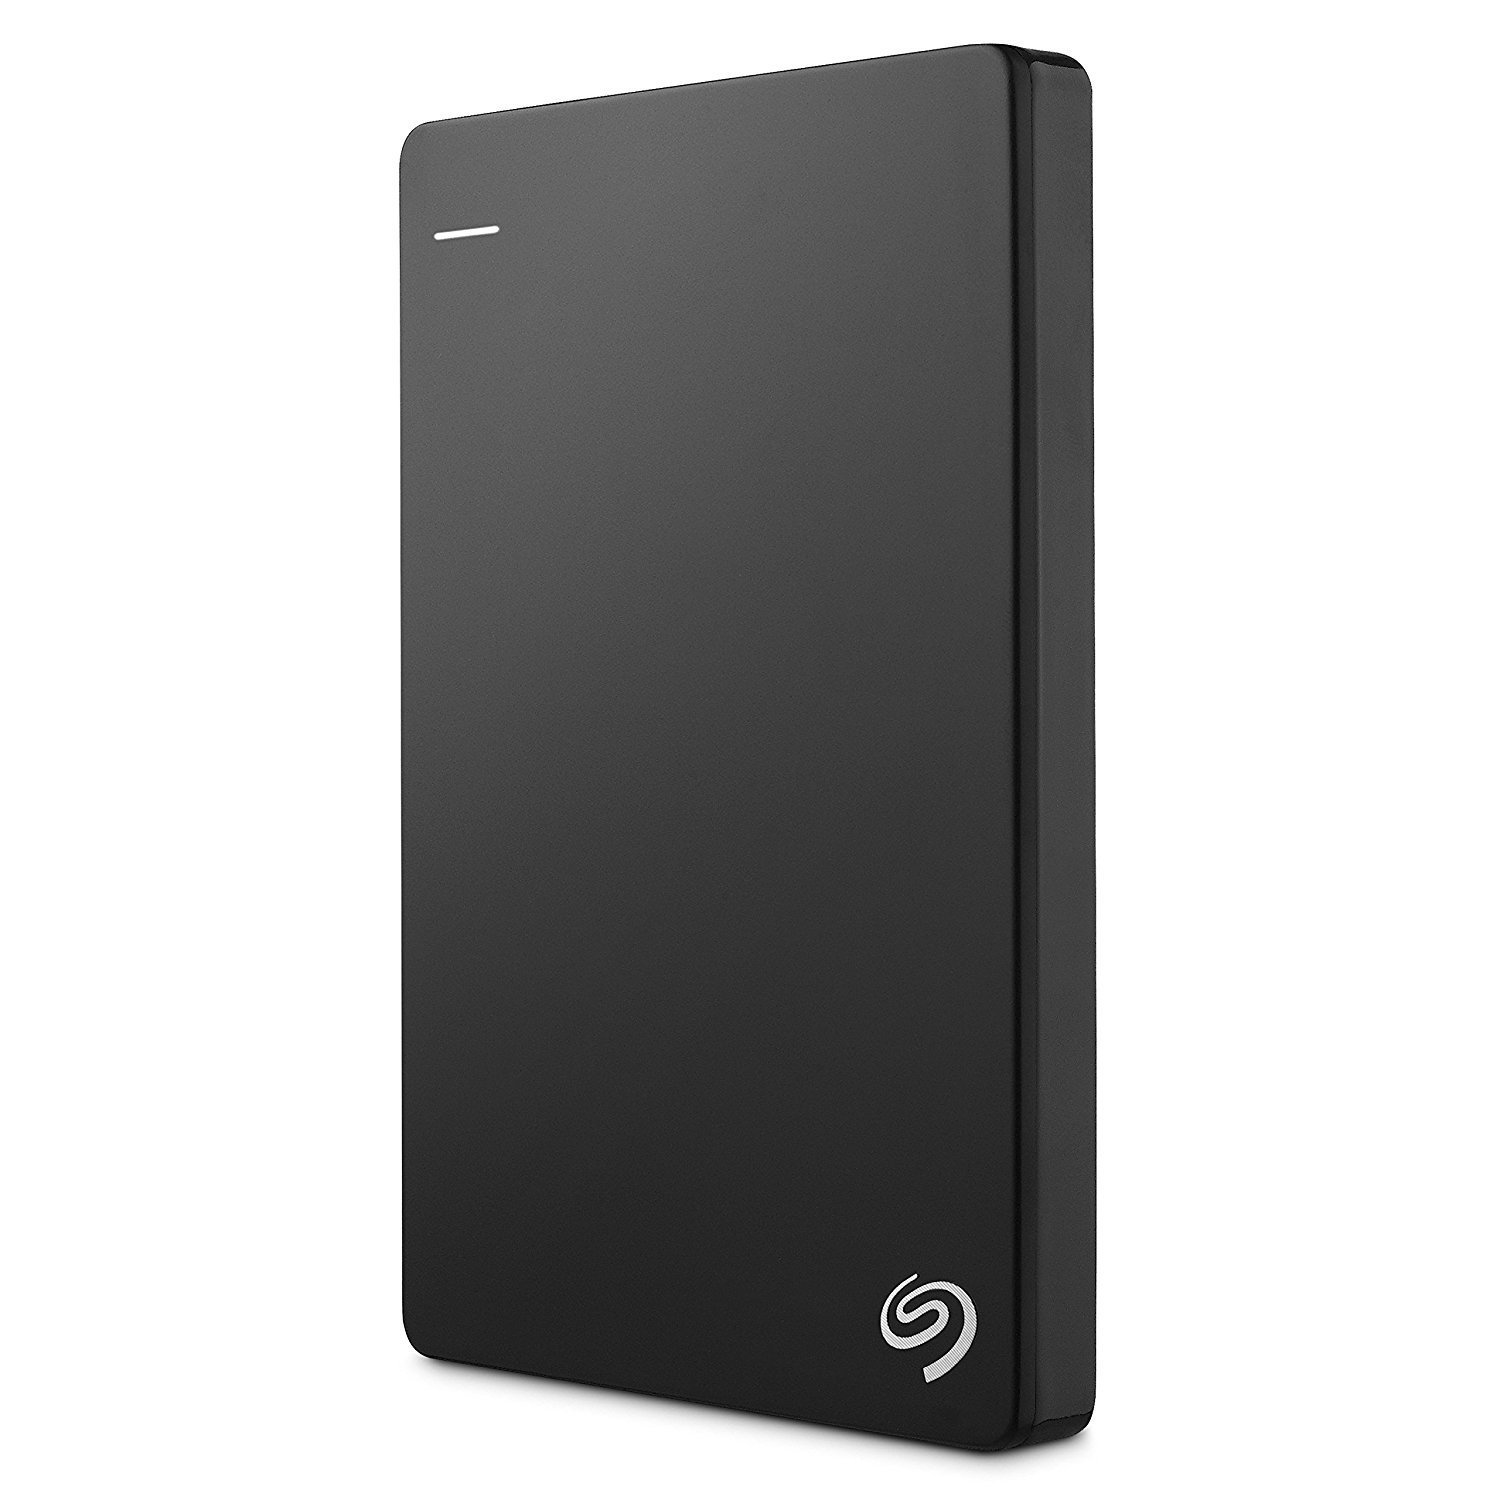 Seagate Backup Plus 5TB Portable External Hard Drive USB 3.0 Black (STDR5000100)